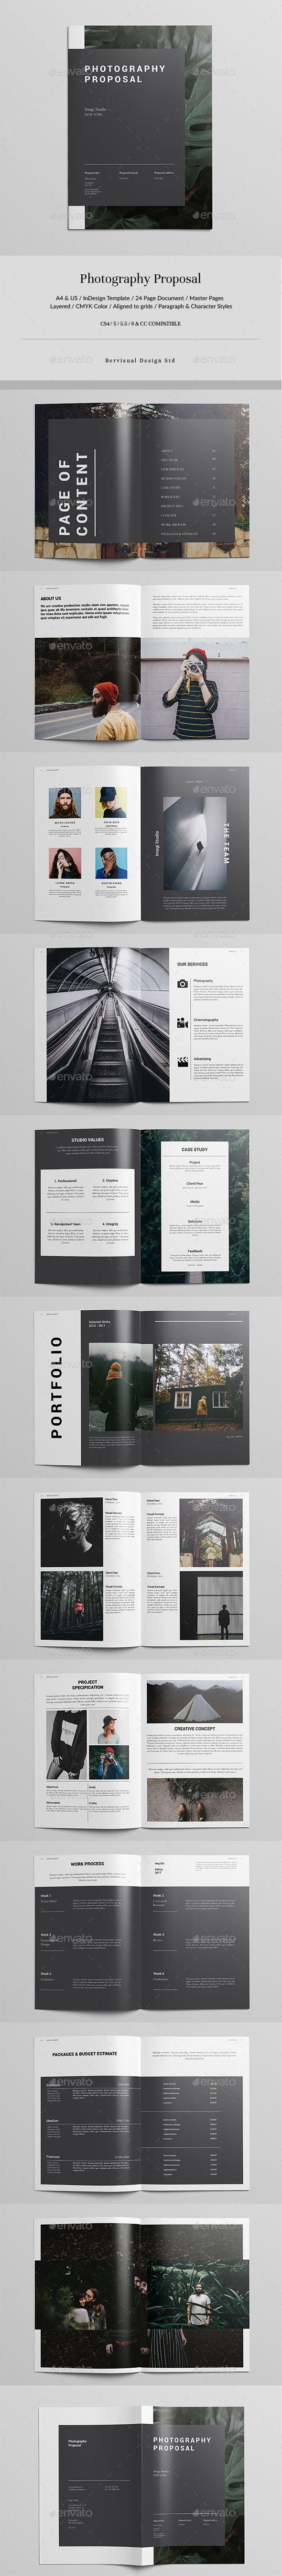 #Photography #Proposal - Corporate #Brochures Download here: https://graphicriver.net/item/photography-proposal/19965385?ref=alena994